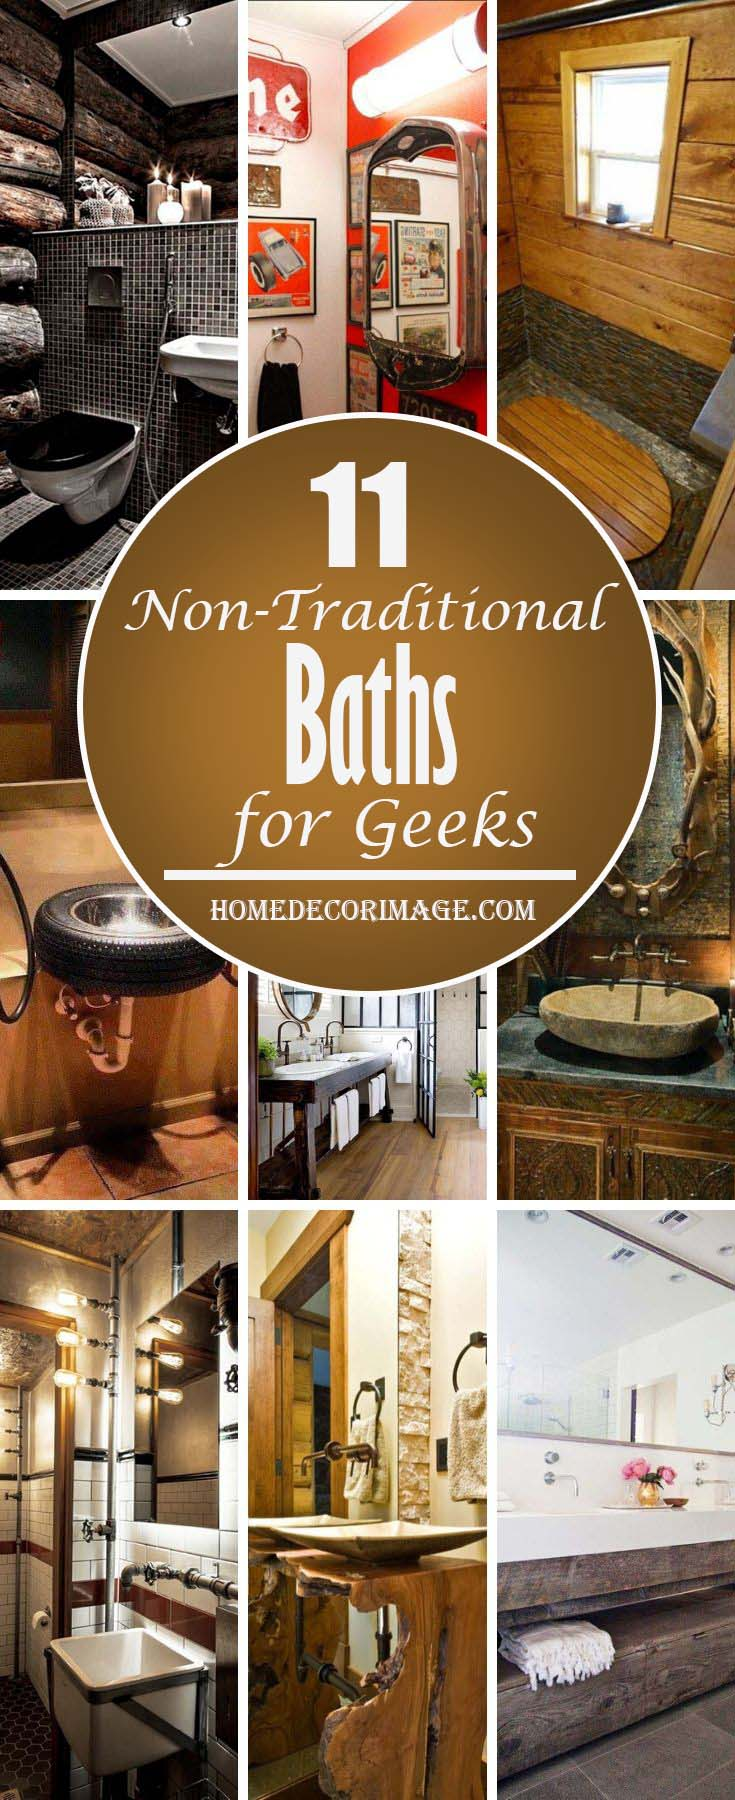 11 Non Traditional Baths for Geeks #bathroom #decor #homedecorimage